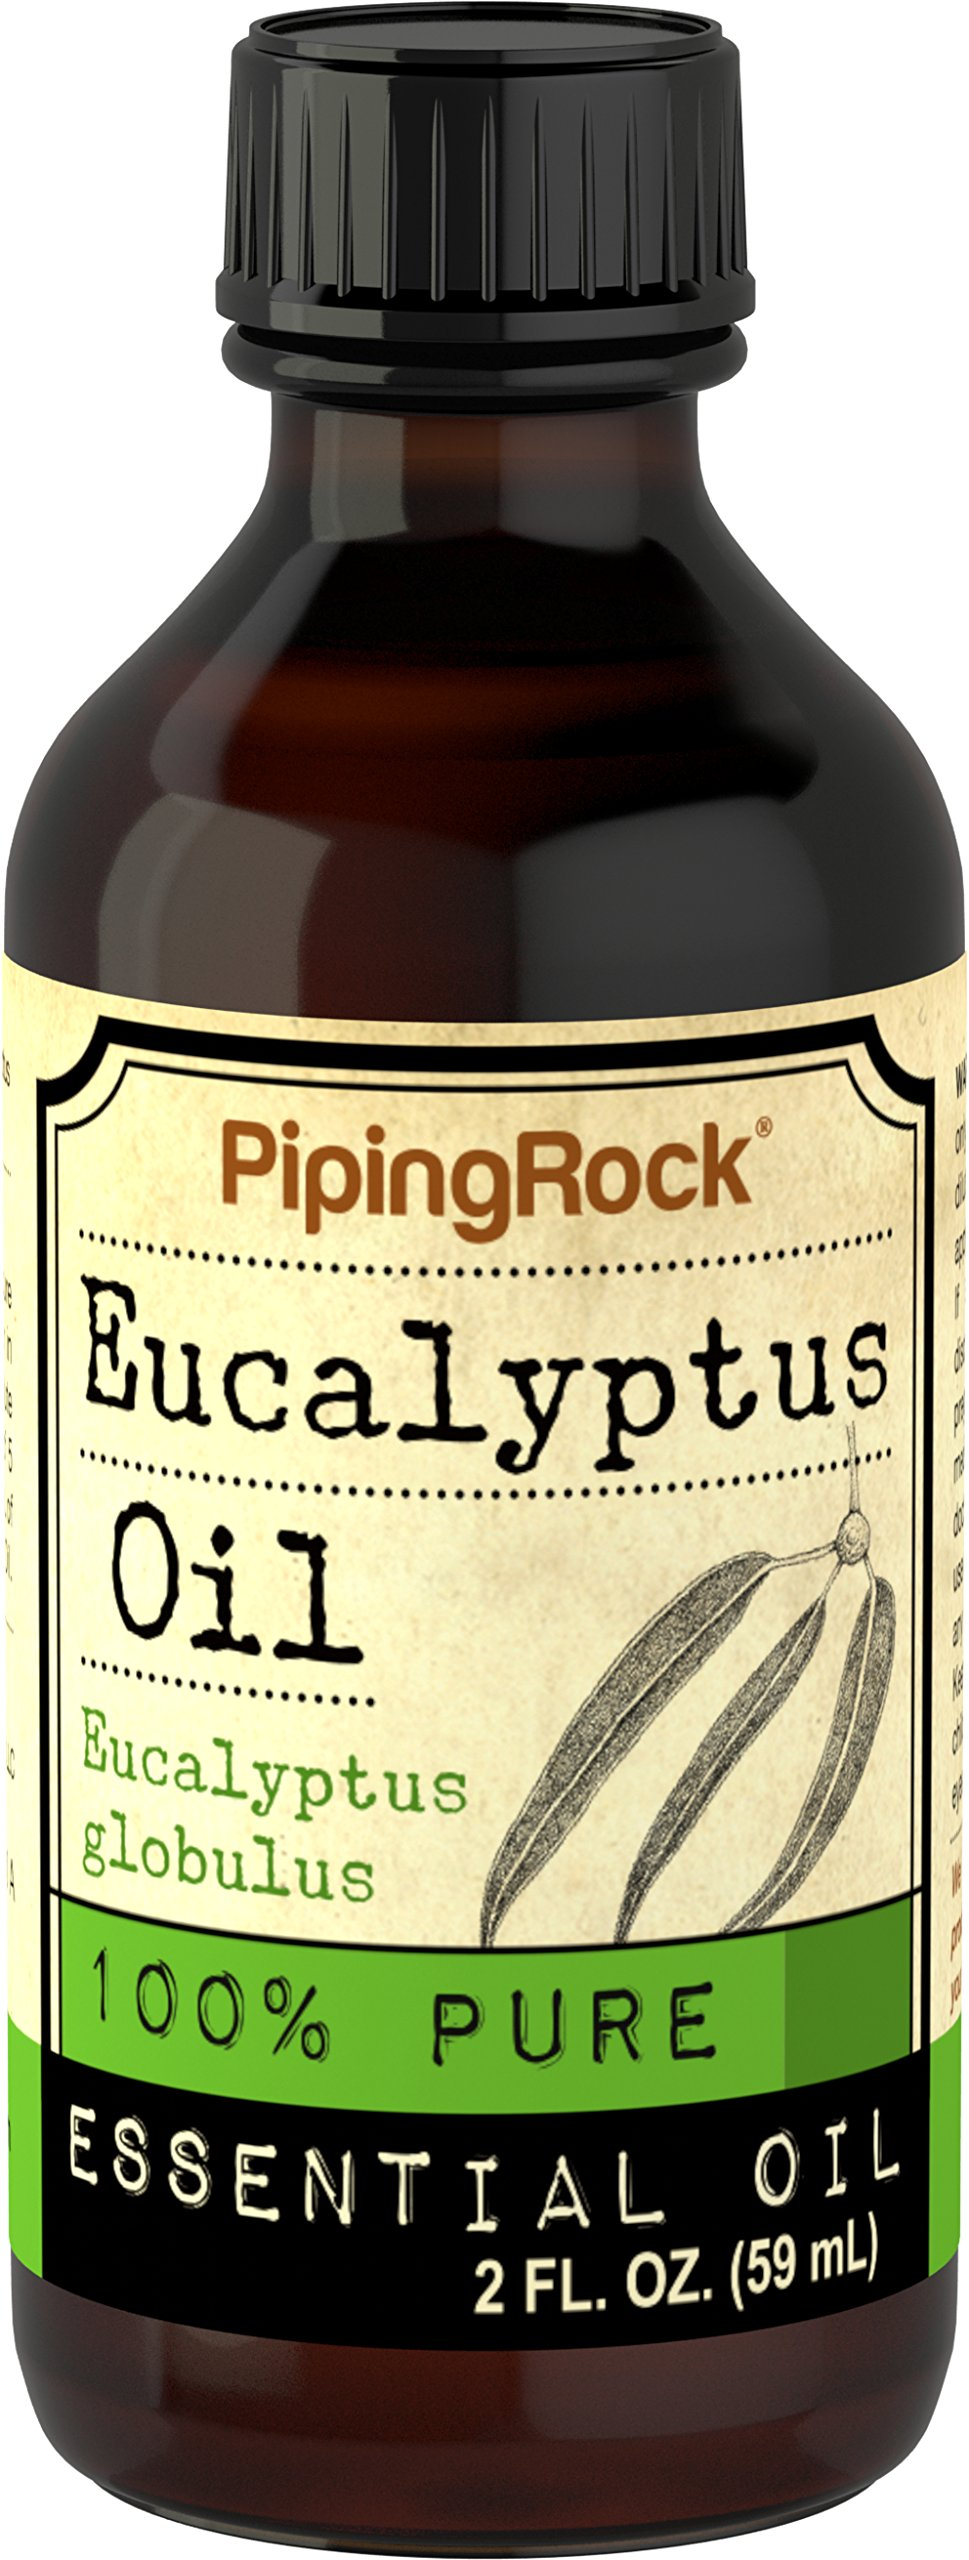 Piping Rock Eucalyptus 100% Pure Essential Oil 2 fl oz (59 ml) Bottle Eucalyptus Globulus Therapeutic Grade